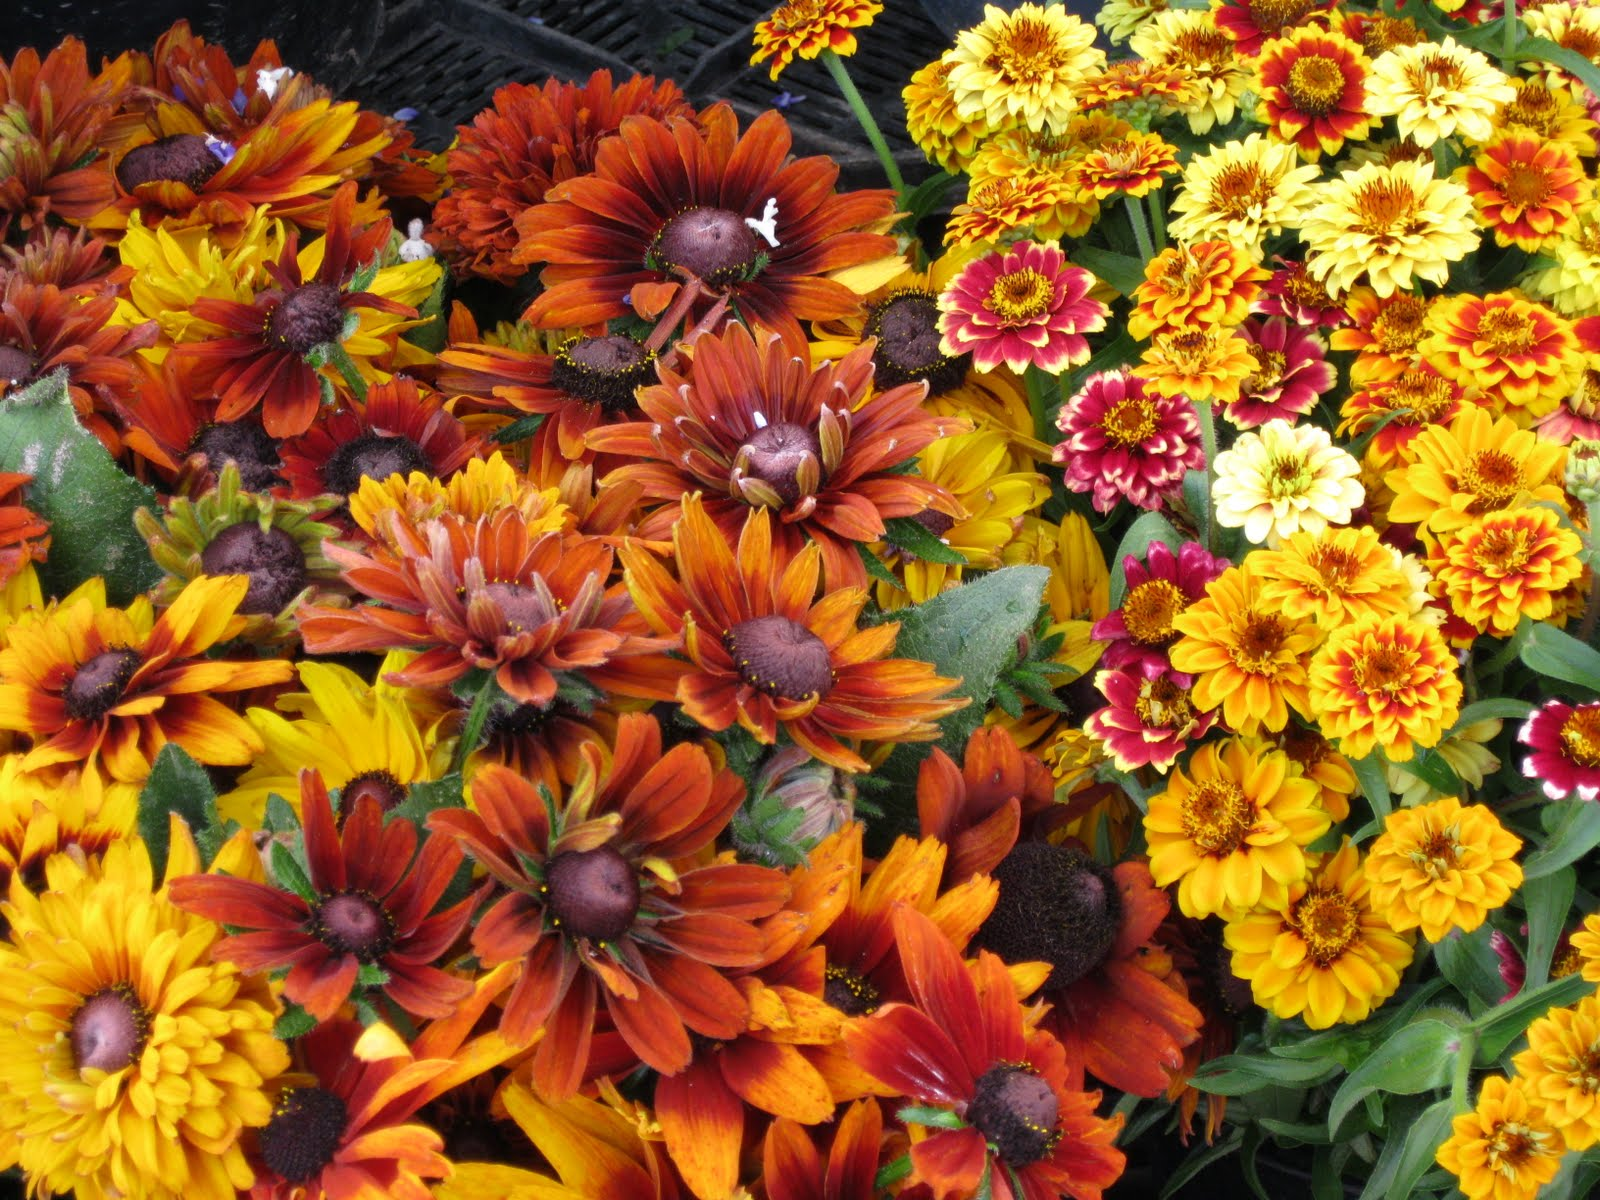 Fall Flowers And Pumpkins Wallpaper I love to eat pumpkin any and 1600x1200